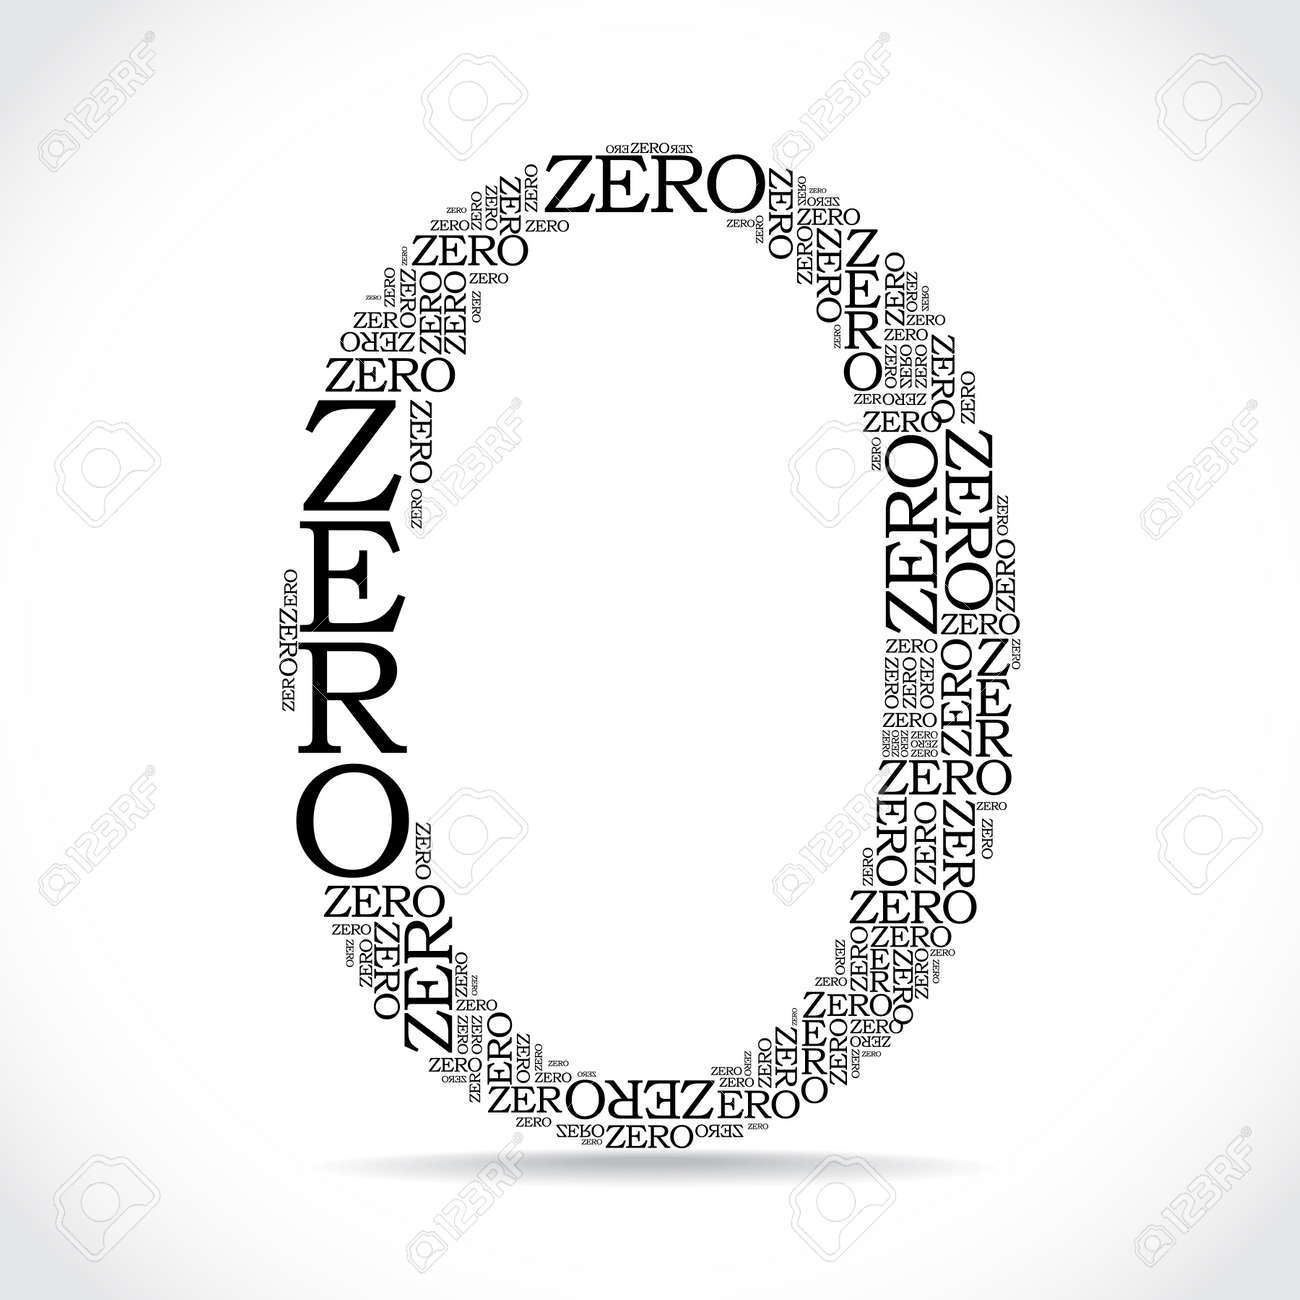 zero sign created from text illustration royalty free cliparts